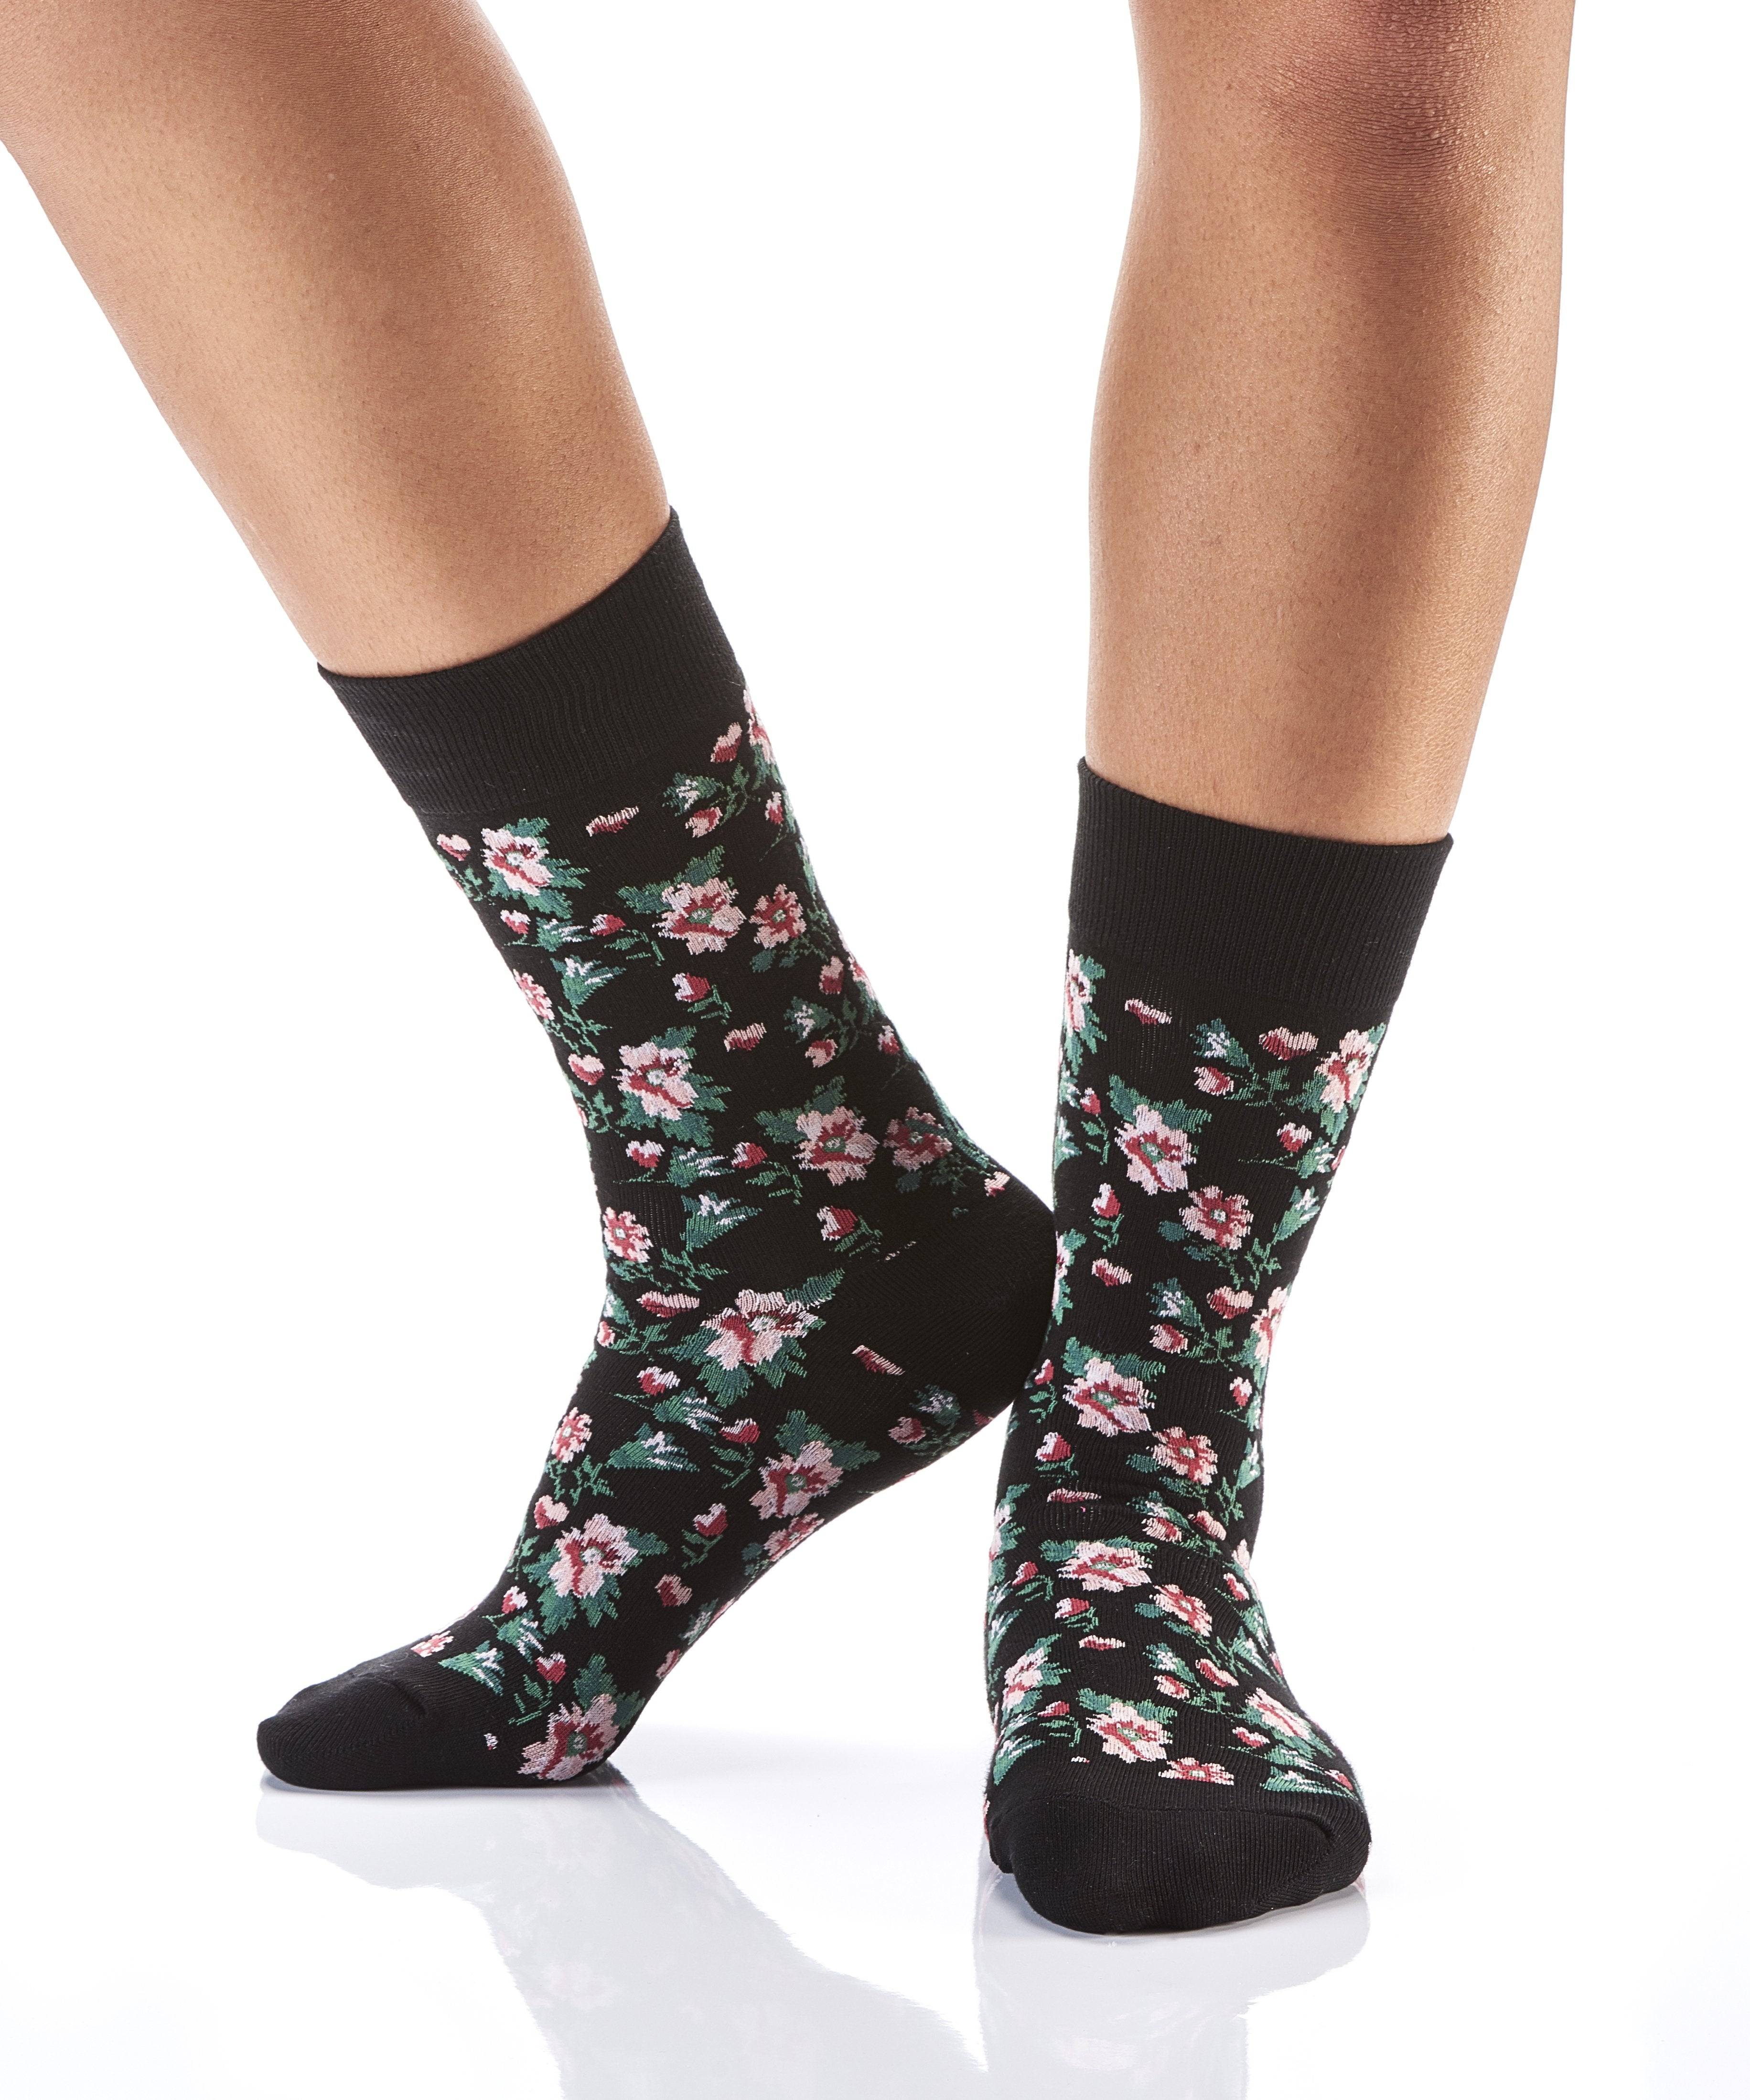 Fun With Floral: Women's Novelty Crew Socks